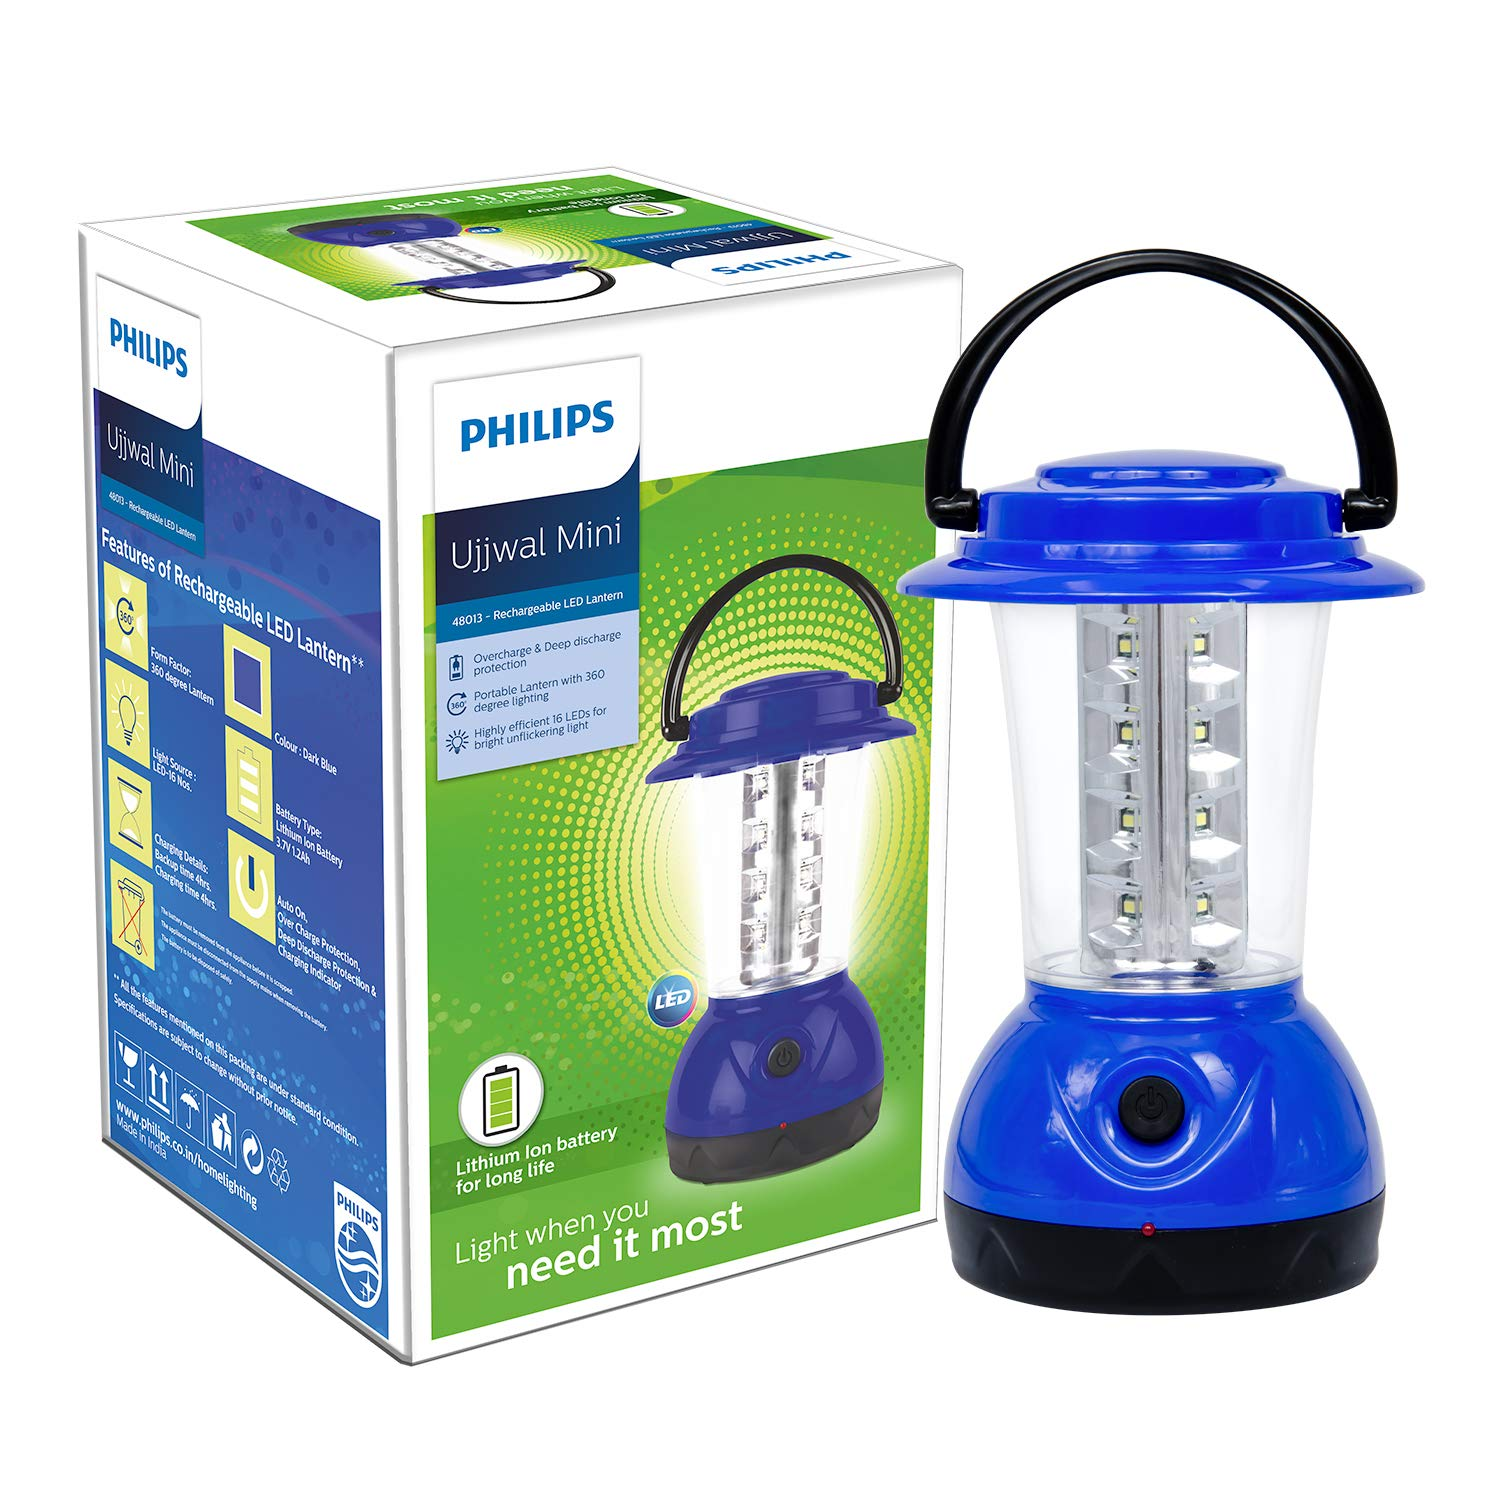 Philips Ujjwal Mini 16-LED Lantern